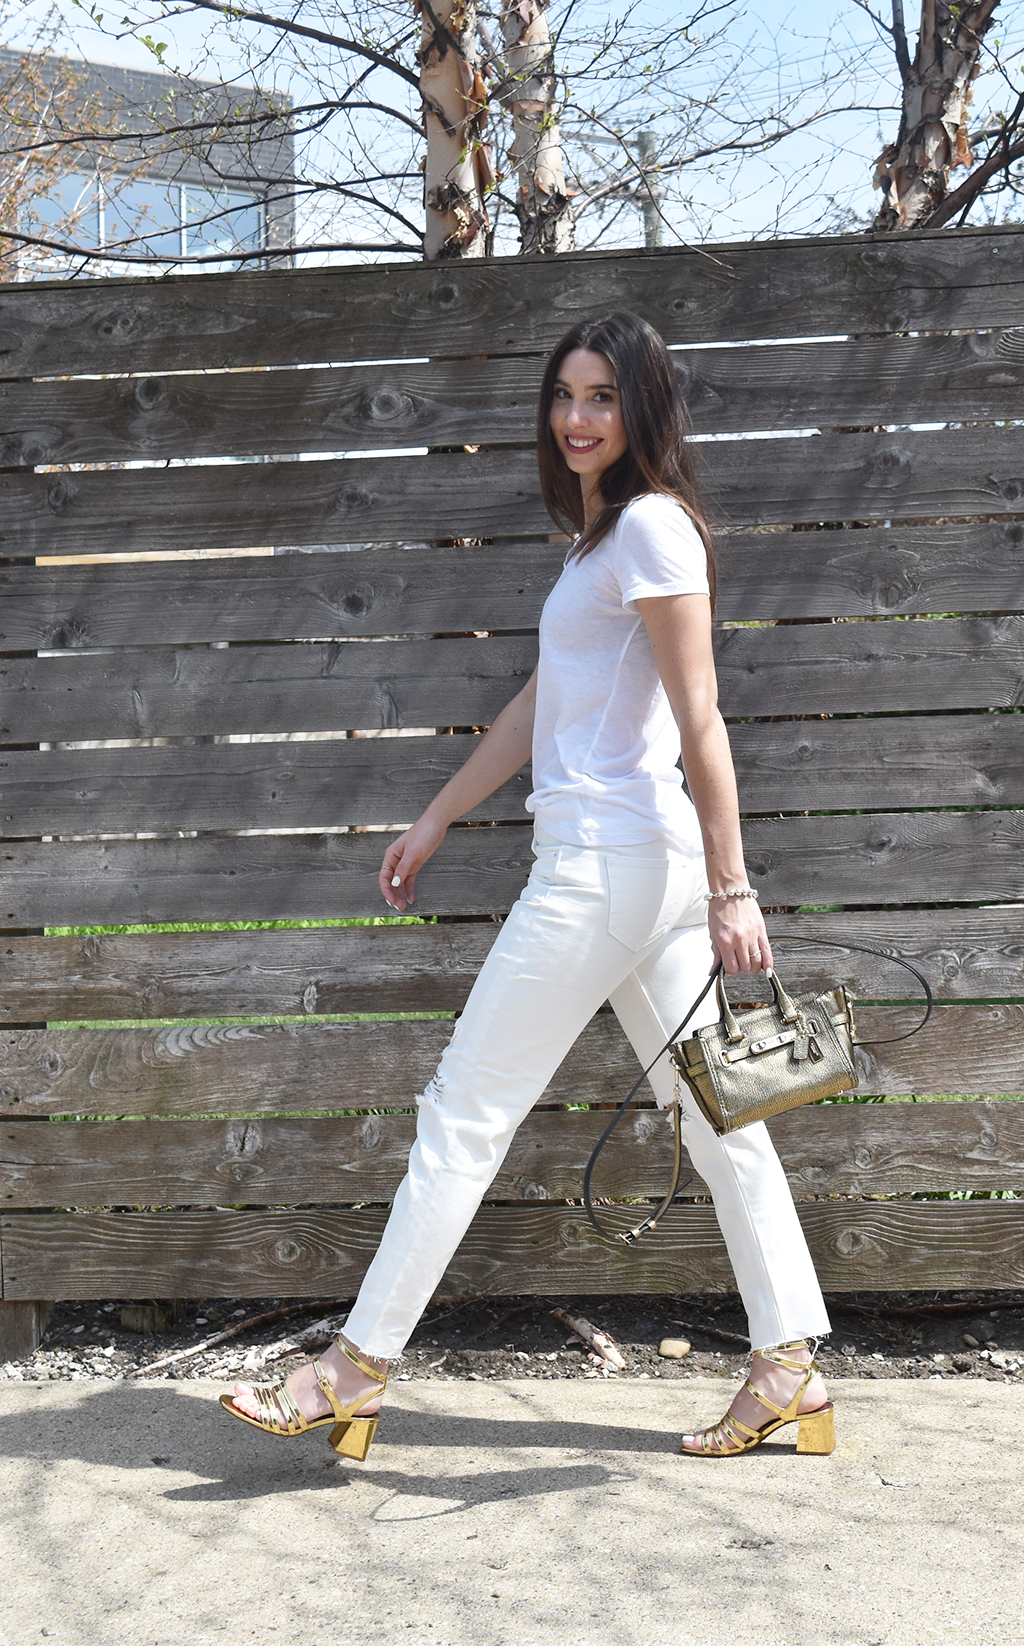 Simplicity in the Basics | Abound White V-neck T-shirt, H&M White Girlfriend Jeans, Zara Gold Block Heeled Sandals, Coach Swagger 20 Gold Crossbody Bag